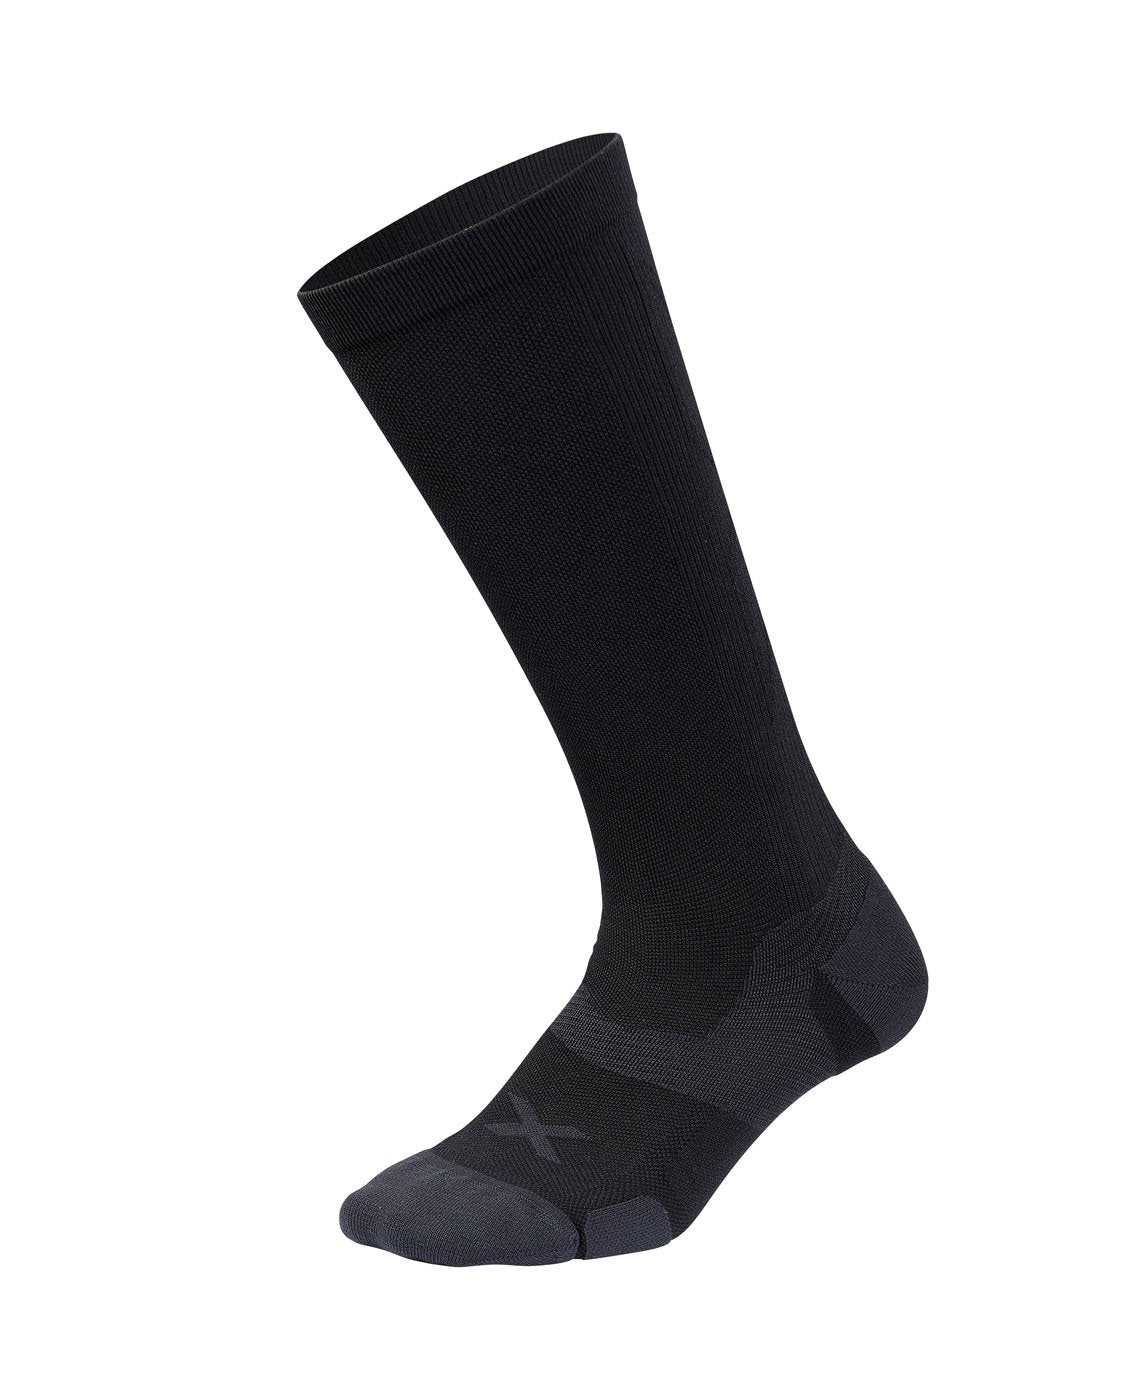 2XU Vectr Cushion Full Length Sock Unisex Black